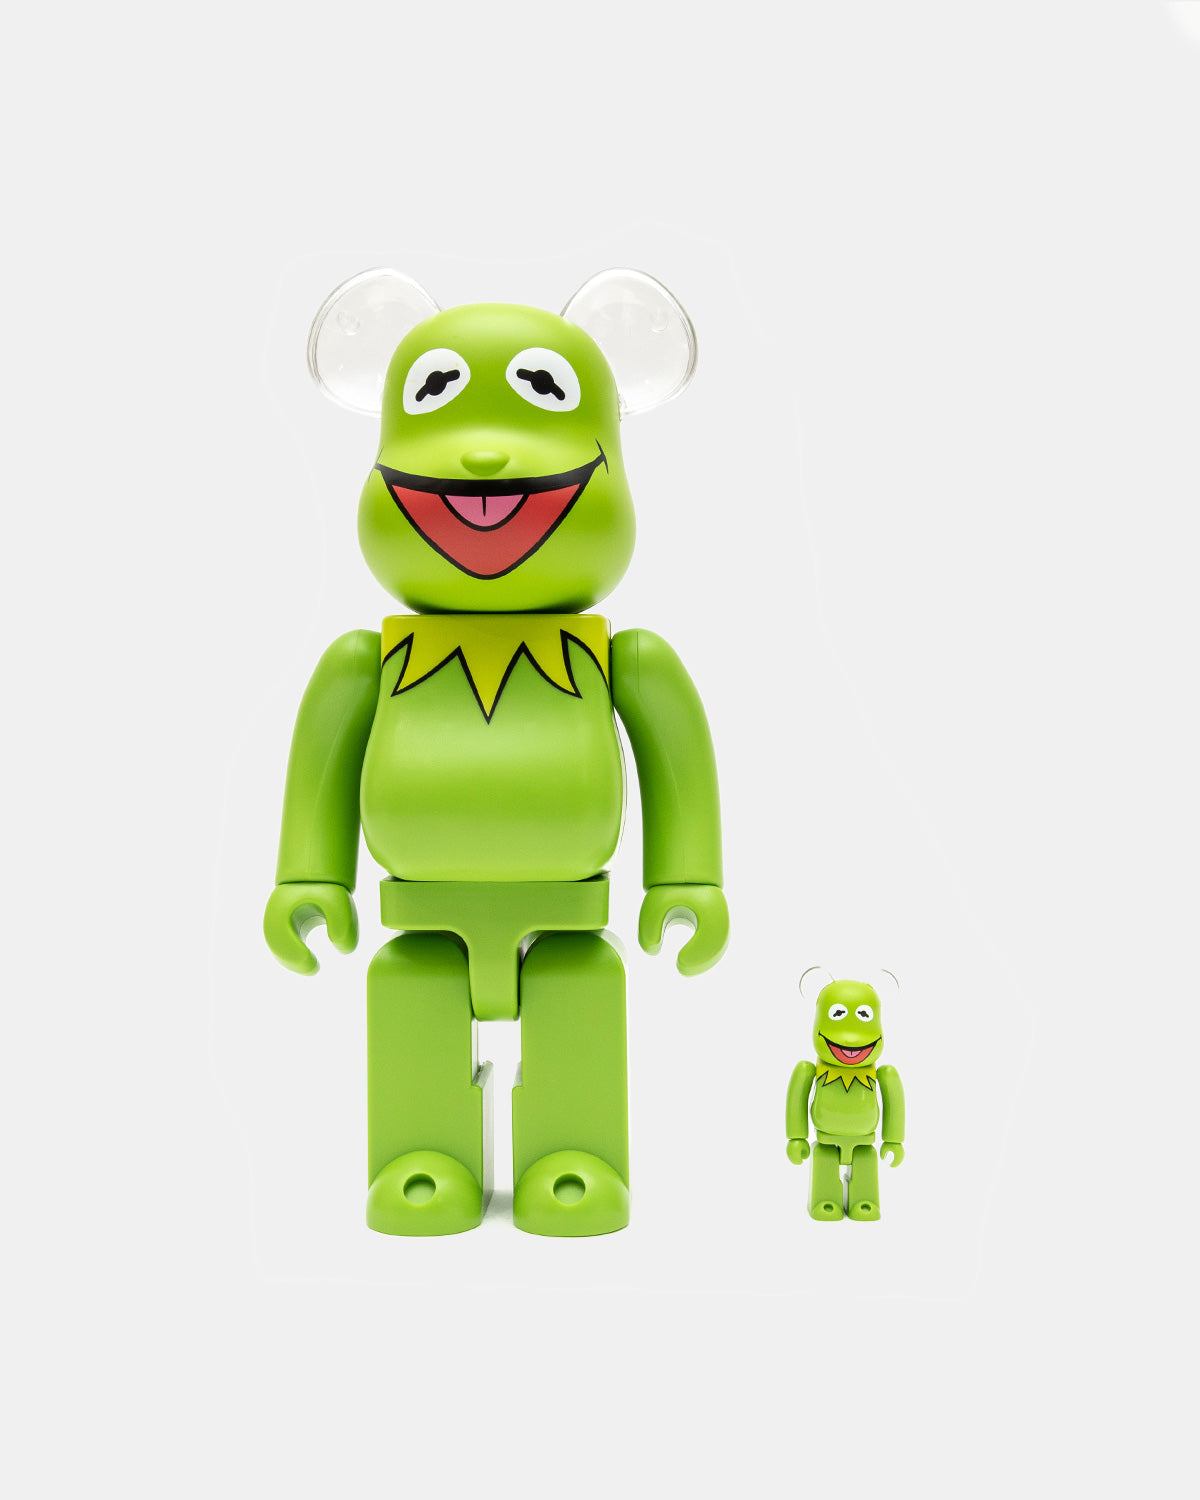 Medicom Toy - Meet the Muppets Kermit the Frog 100%/400% Be@rbrick Set (Green)